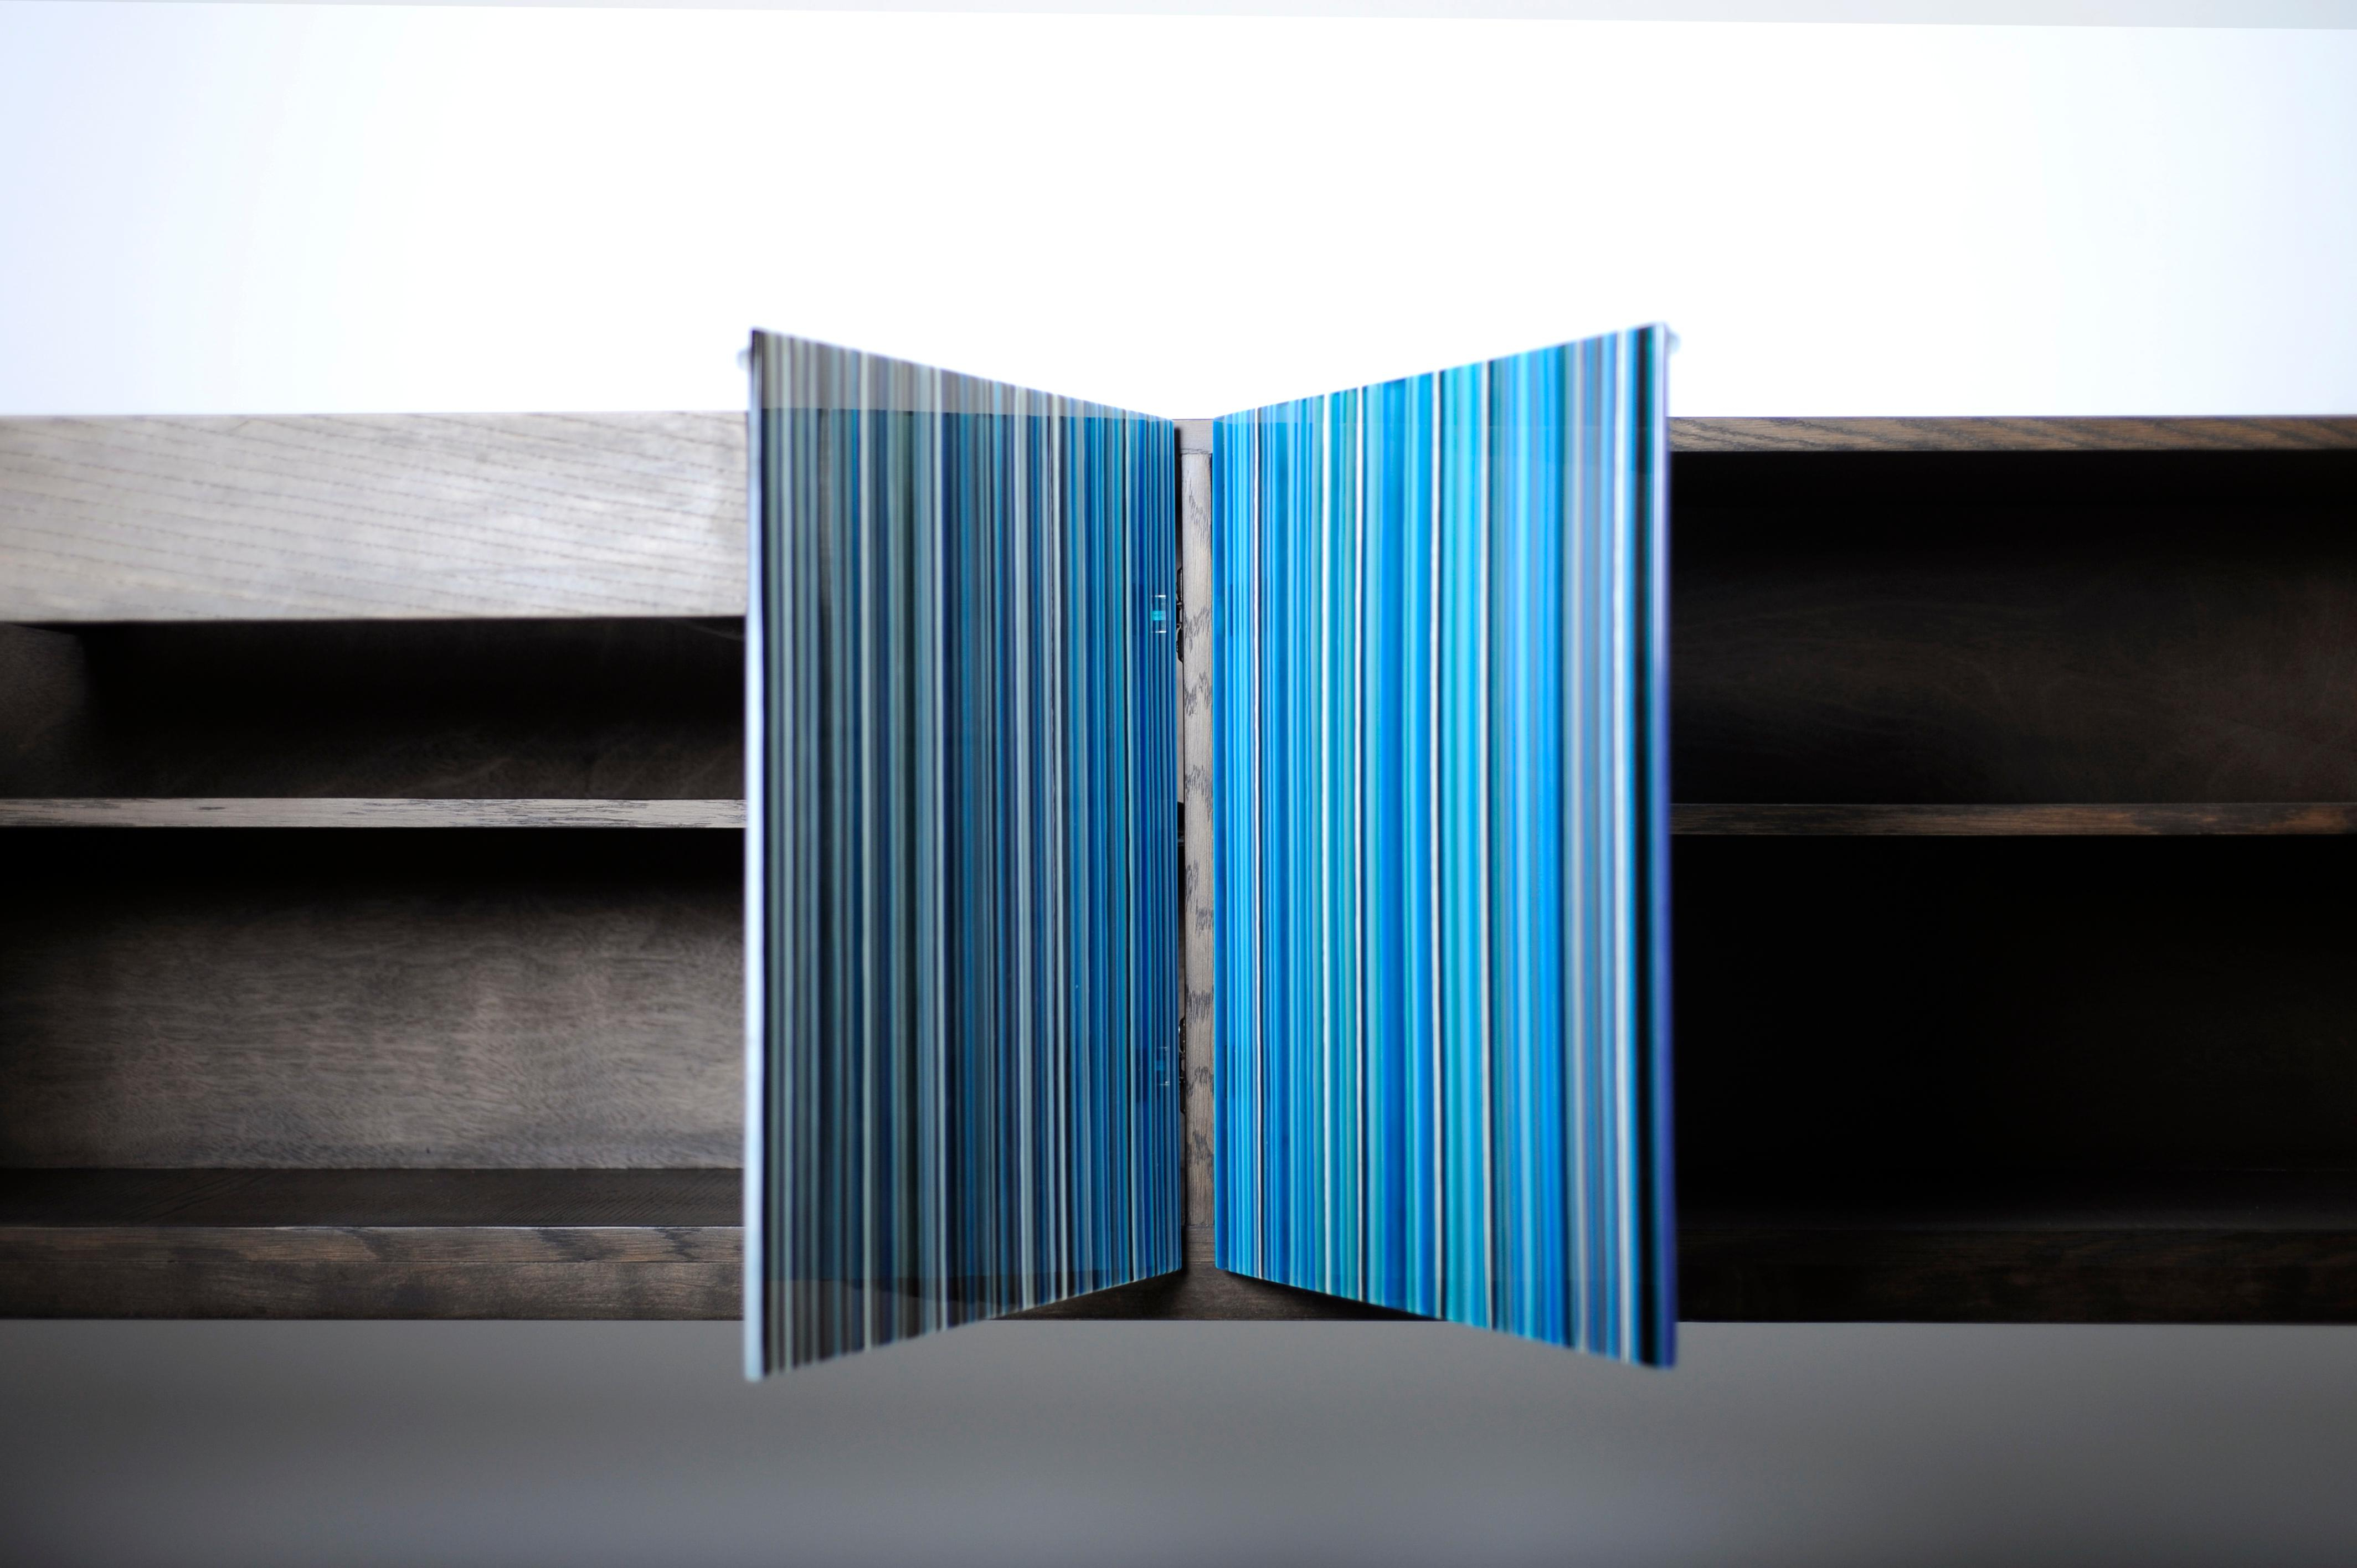 Retro Style Buffet Credenza, Barcode Design In Colored Glass, Shades Of Blue Within Blue Stained Glass Credenzas (View 9 of 20)